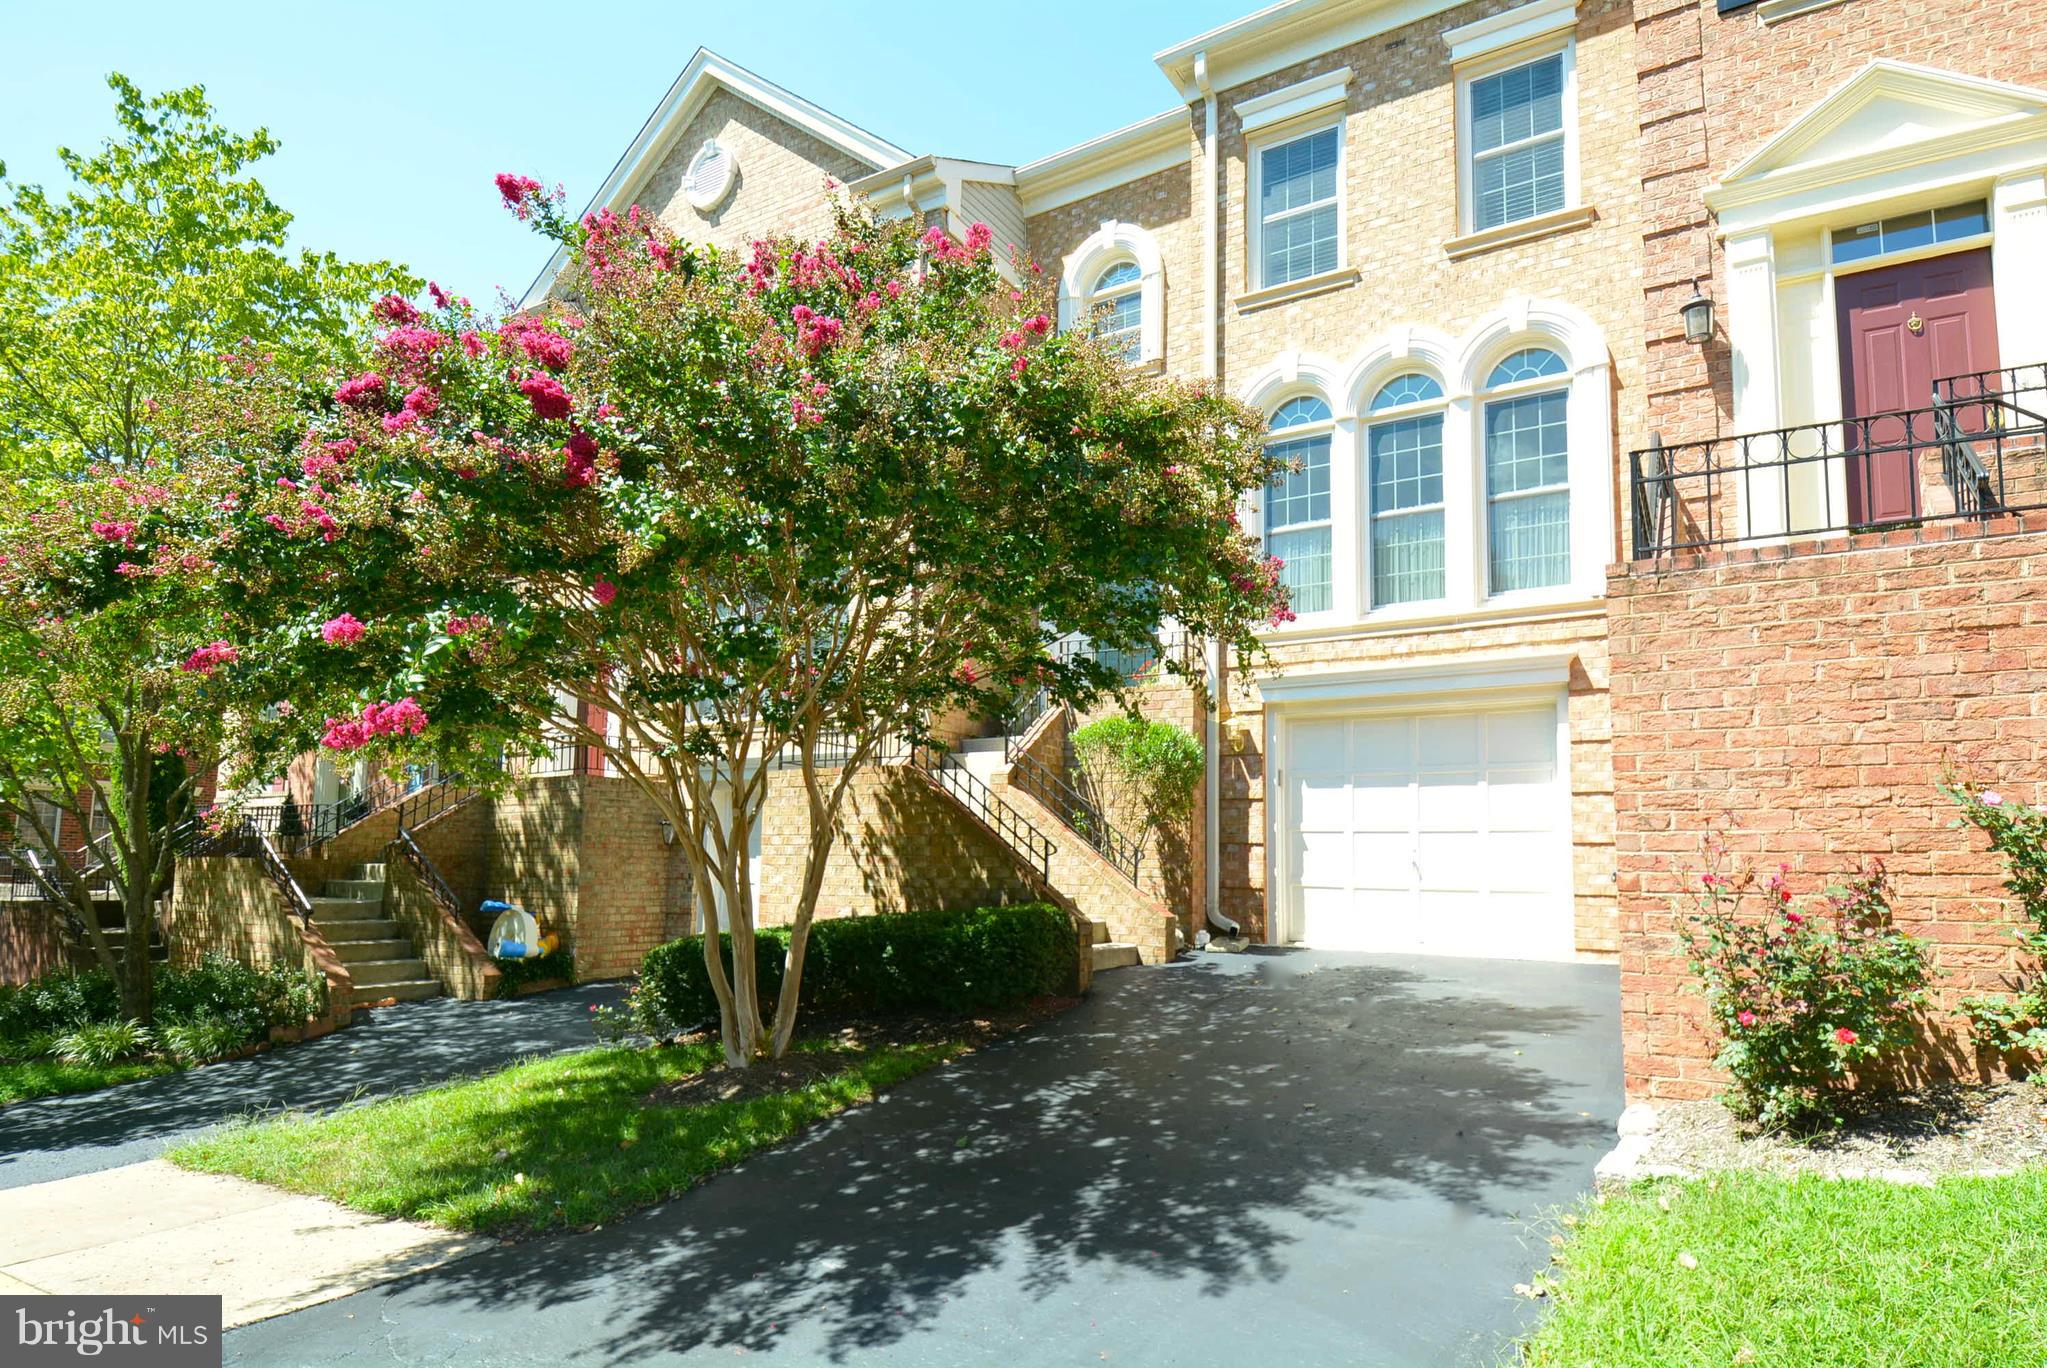 THIS GARAGE TOWNHOME IN PRIME LOCATION IS LOVELY!!! Updated kitchen & master bath..Large kit w/eat in area & SGD to upper deck..Formal sunlit LR..Formal DR..Skylite in upper hall..MBR w/walk in closet..MBR bath updated..LL RR w/FP & walk out to LL deck..Home backs to trees..Great backyard landscaping..Many updates..Near Ft. Belvoir, Parkway, Spgfld Metro..Seller use Natl Settle..Immaculate!!